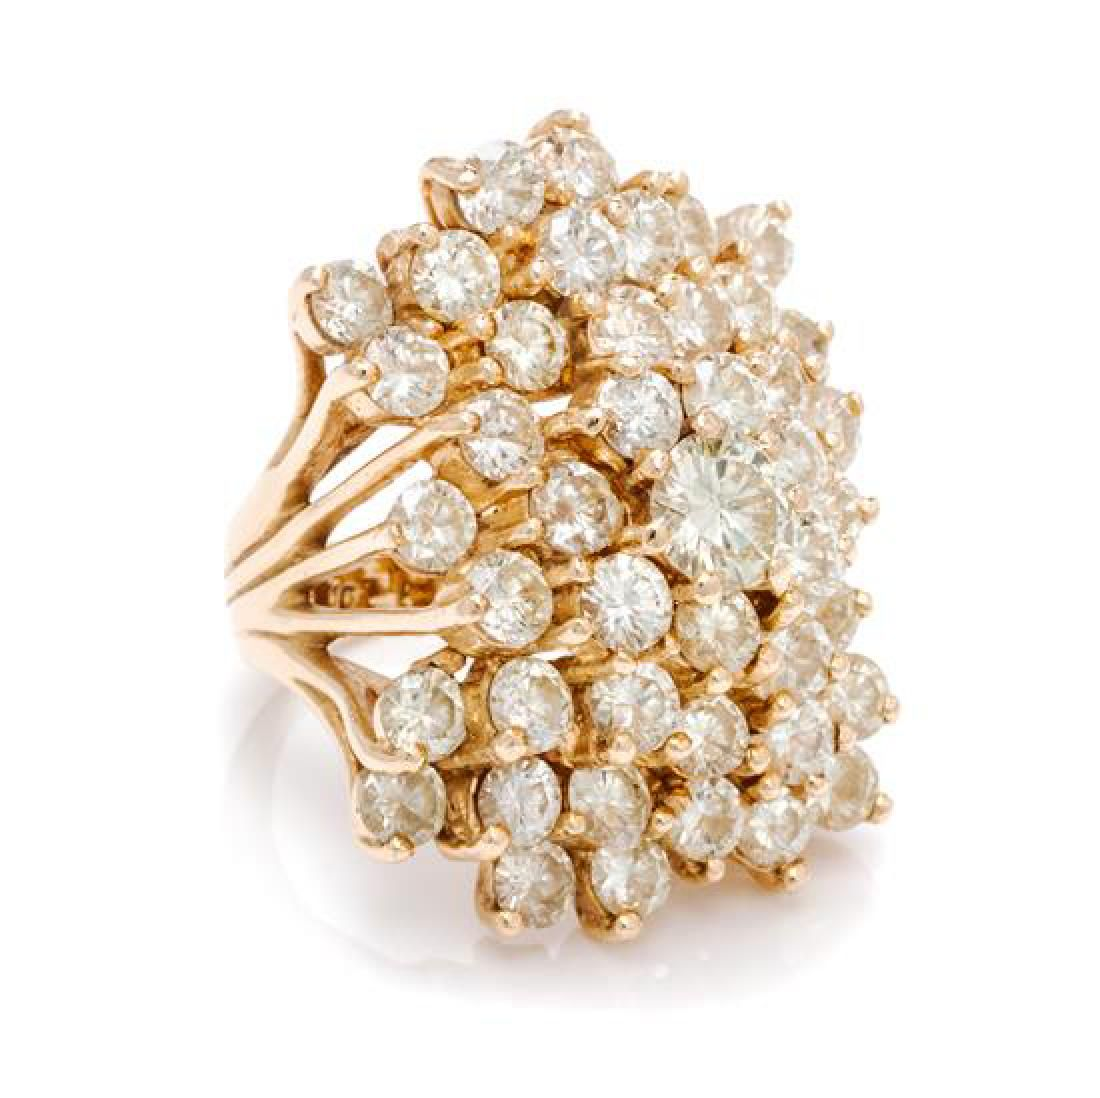 A 14 Karat Yellow Gold and Diamond Cluster Ring, 13.60